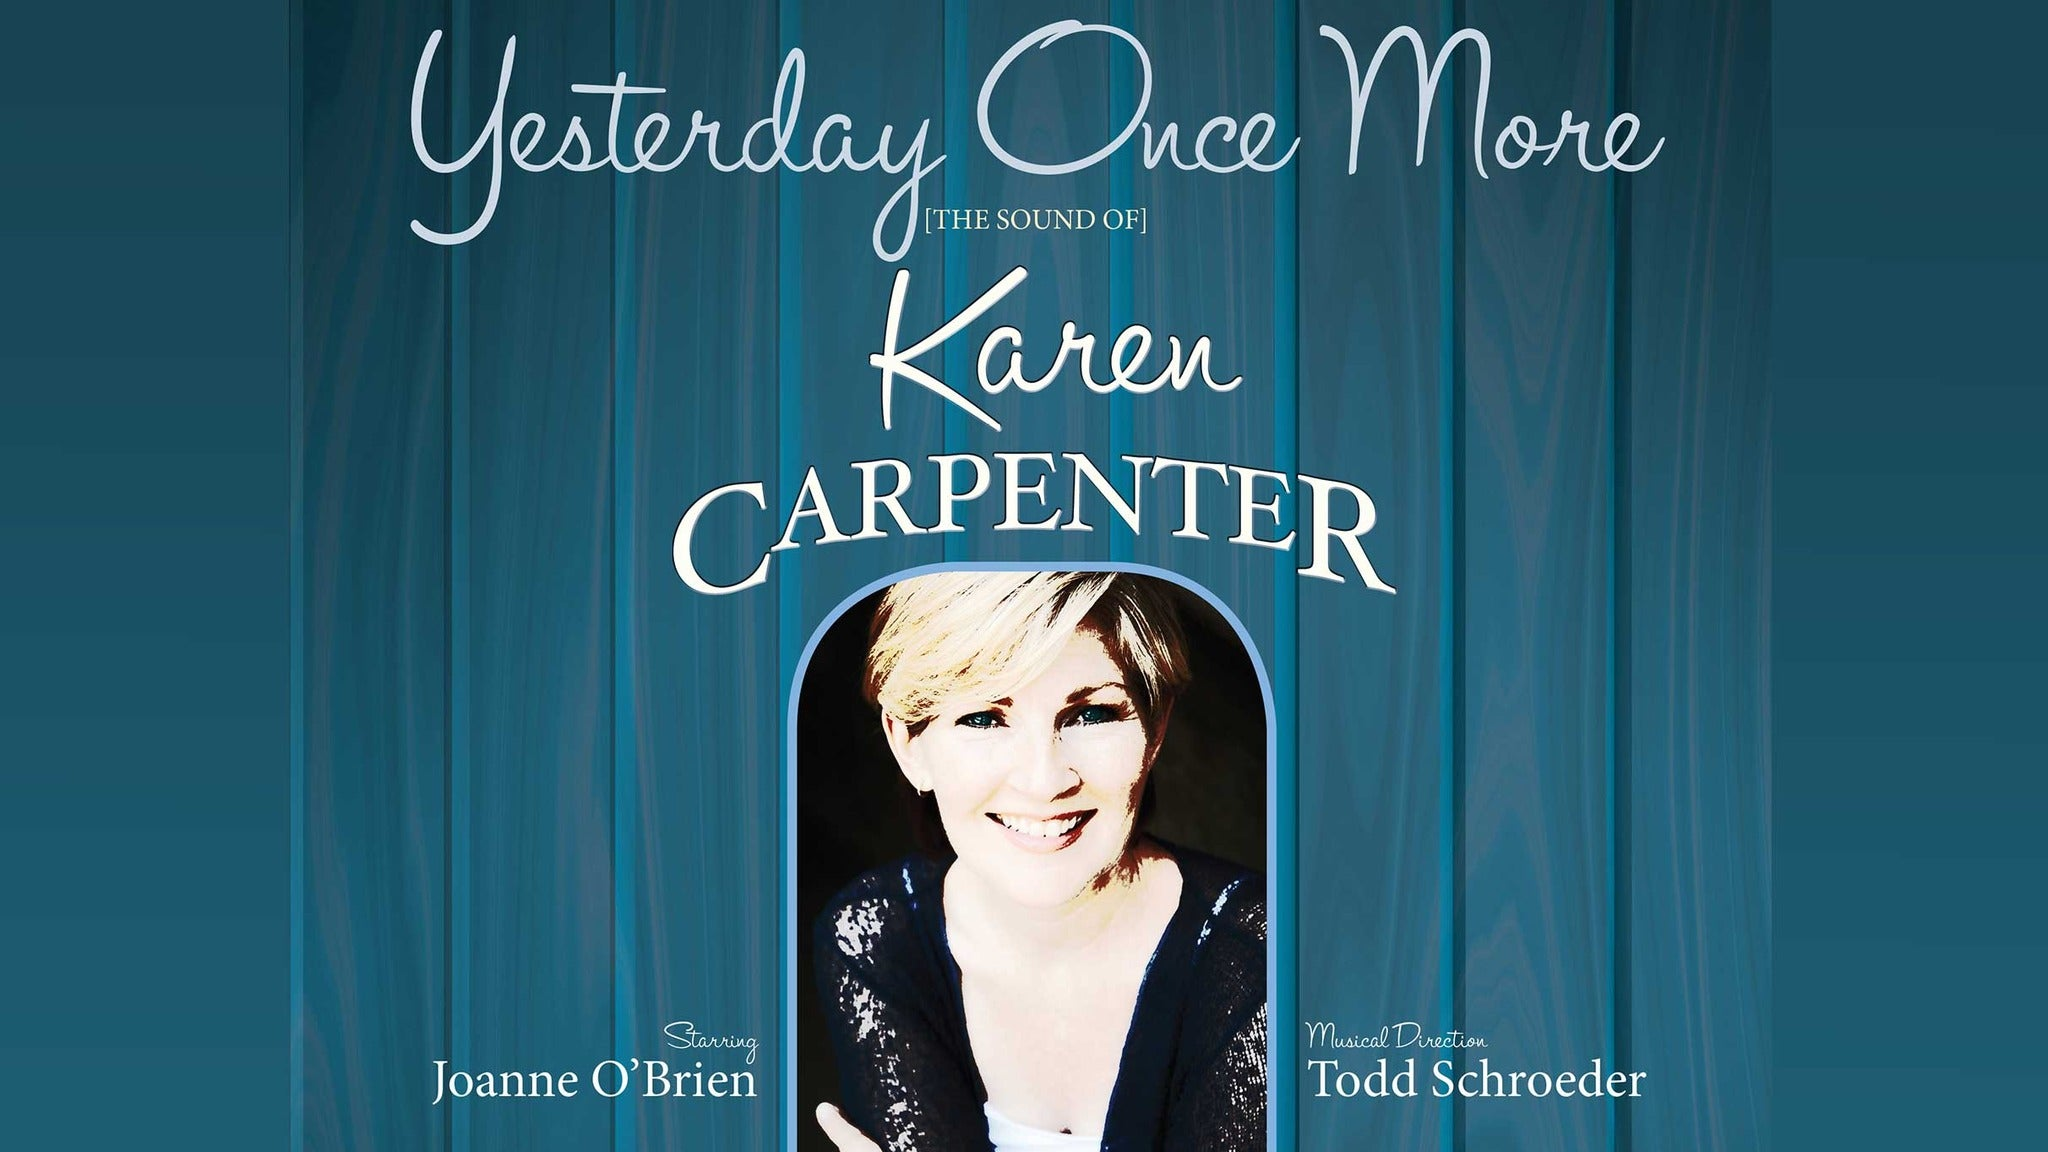 SORRY, THIS EVENT IS NO LONGER ACTIVE<br>Yesterday Once More: The Sound of Karen Carpenter - Aventura, FL 33180